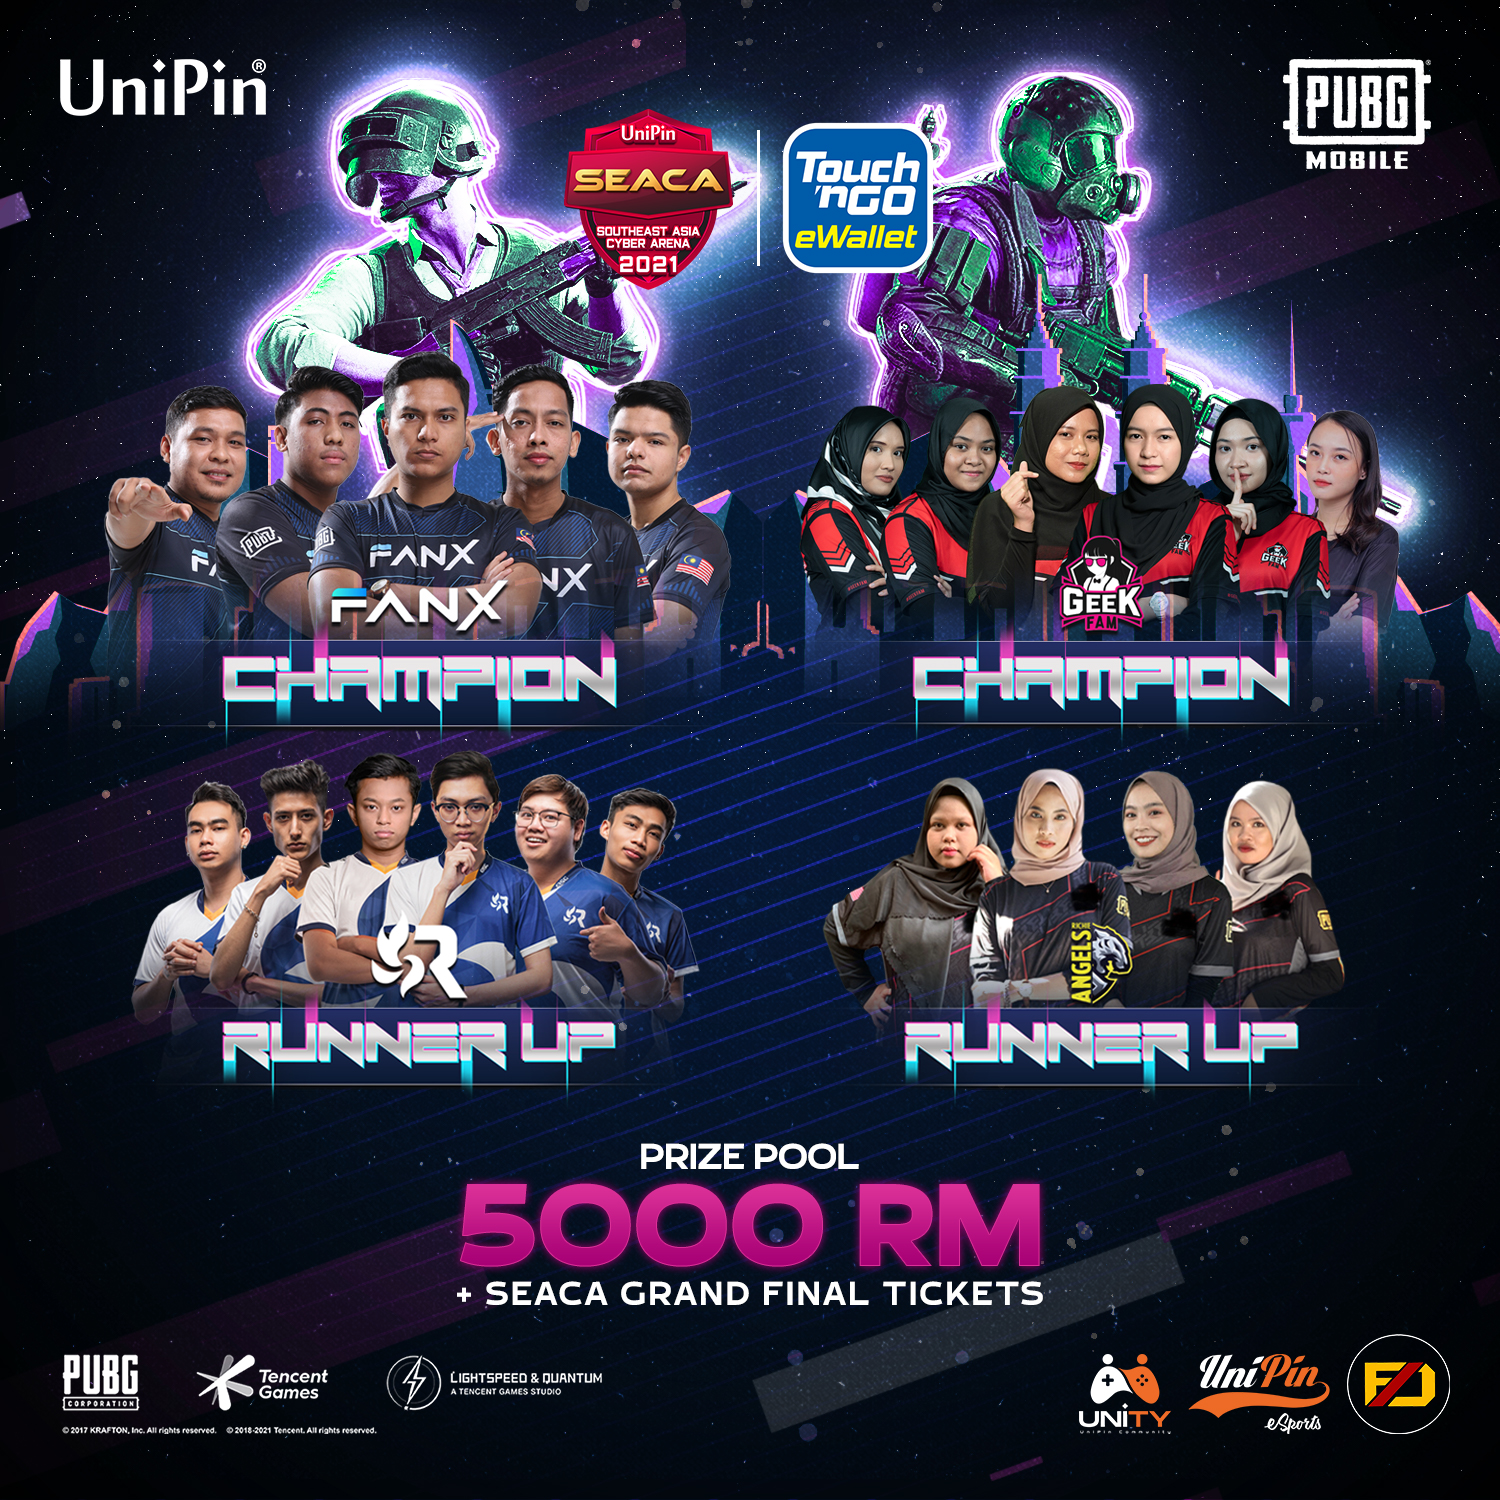 Four Top Malaysian Teams Will Compete in the UniPin SEACA 2021 Grand Final One of the Largest Esports Tournaments in SEA